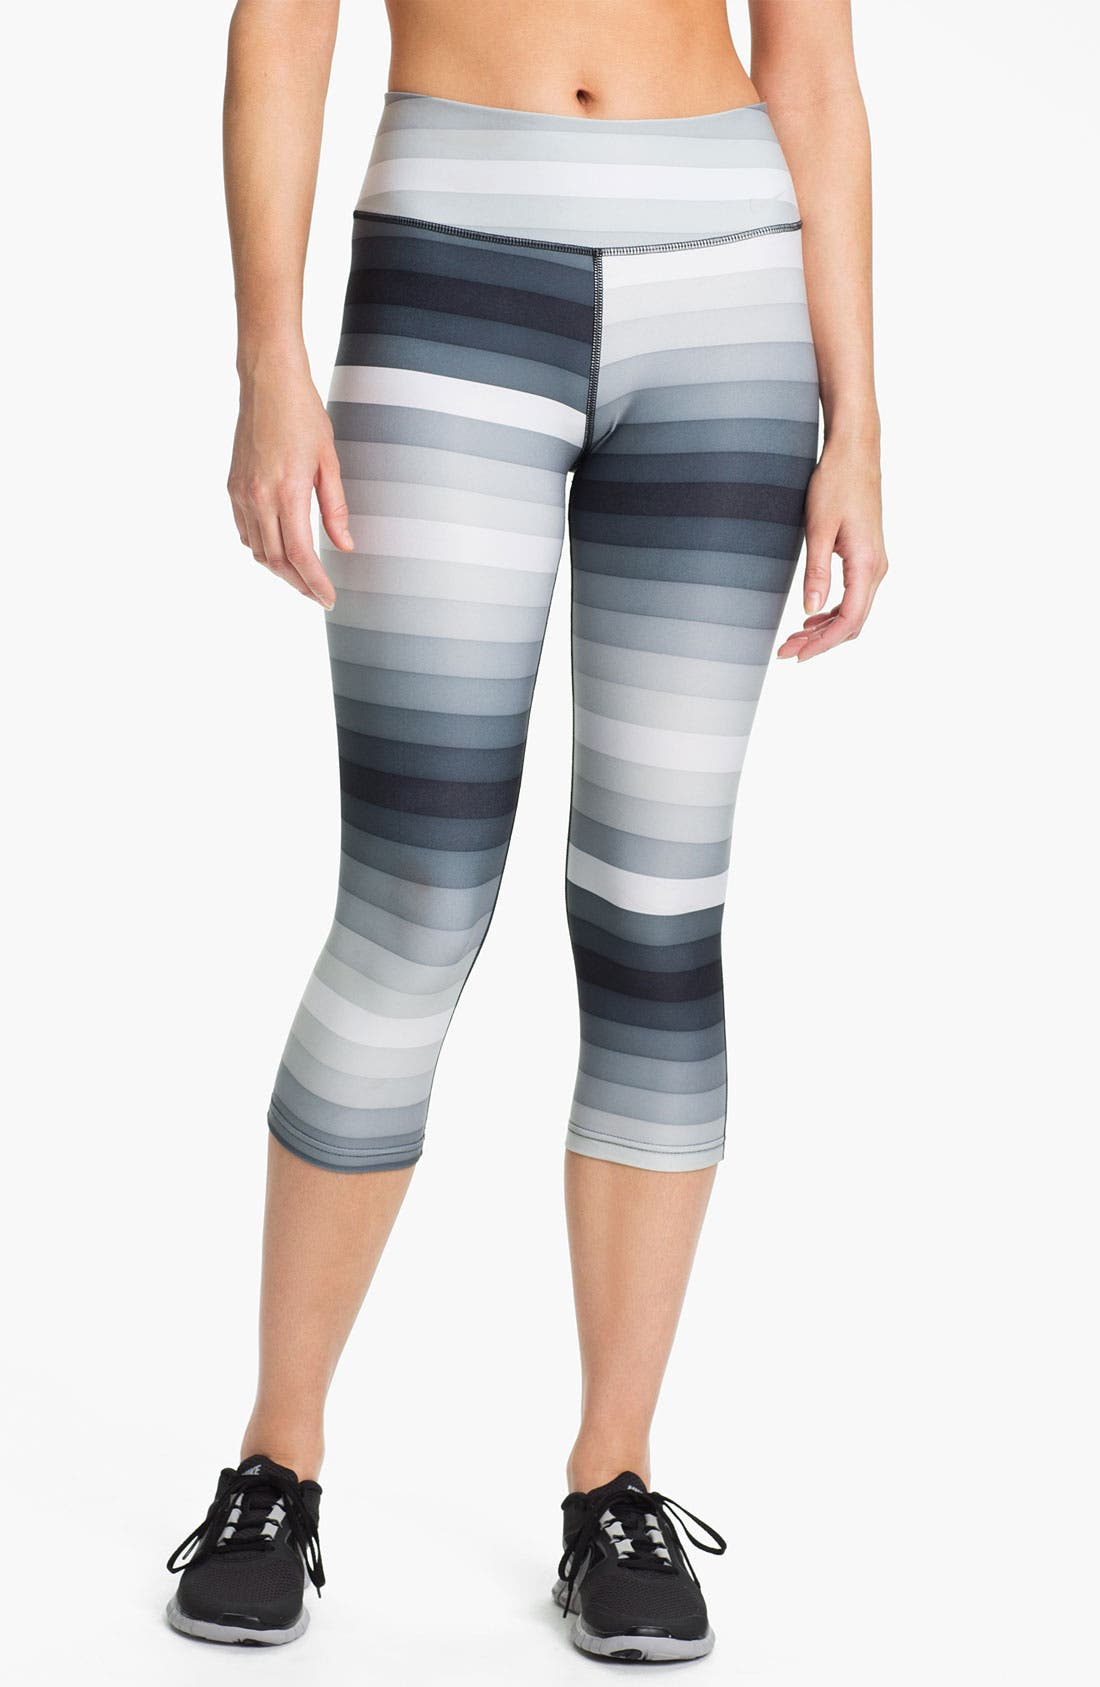 Alternate Image 1 Selected - Nike 'Legend 2.0' Print Dri-FIT Tights